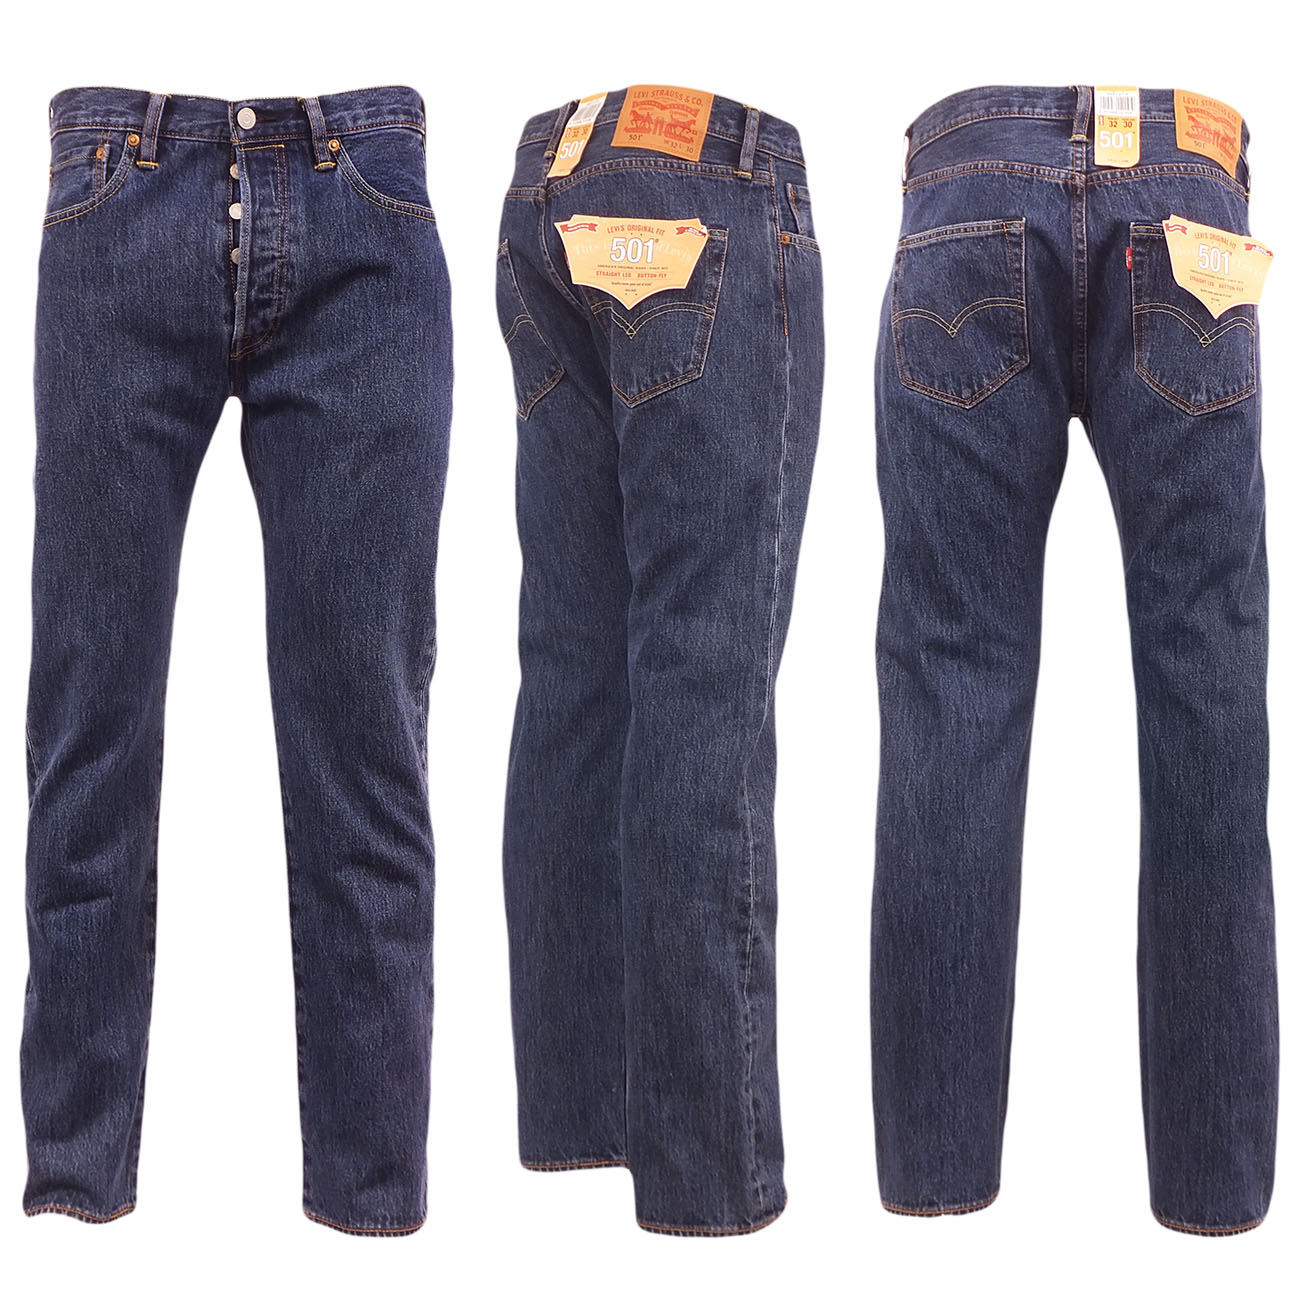 Levi-501-Jeans-Mens-Original-Levi-039-s-Strauss-Denim-Straight-Fit-New-All-Sizes